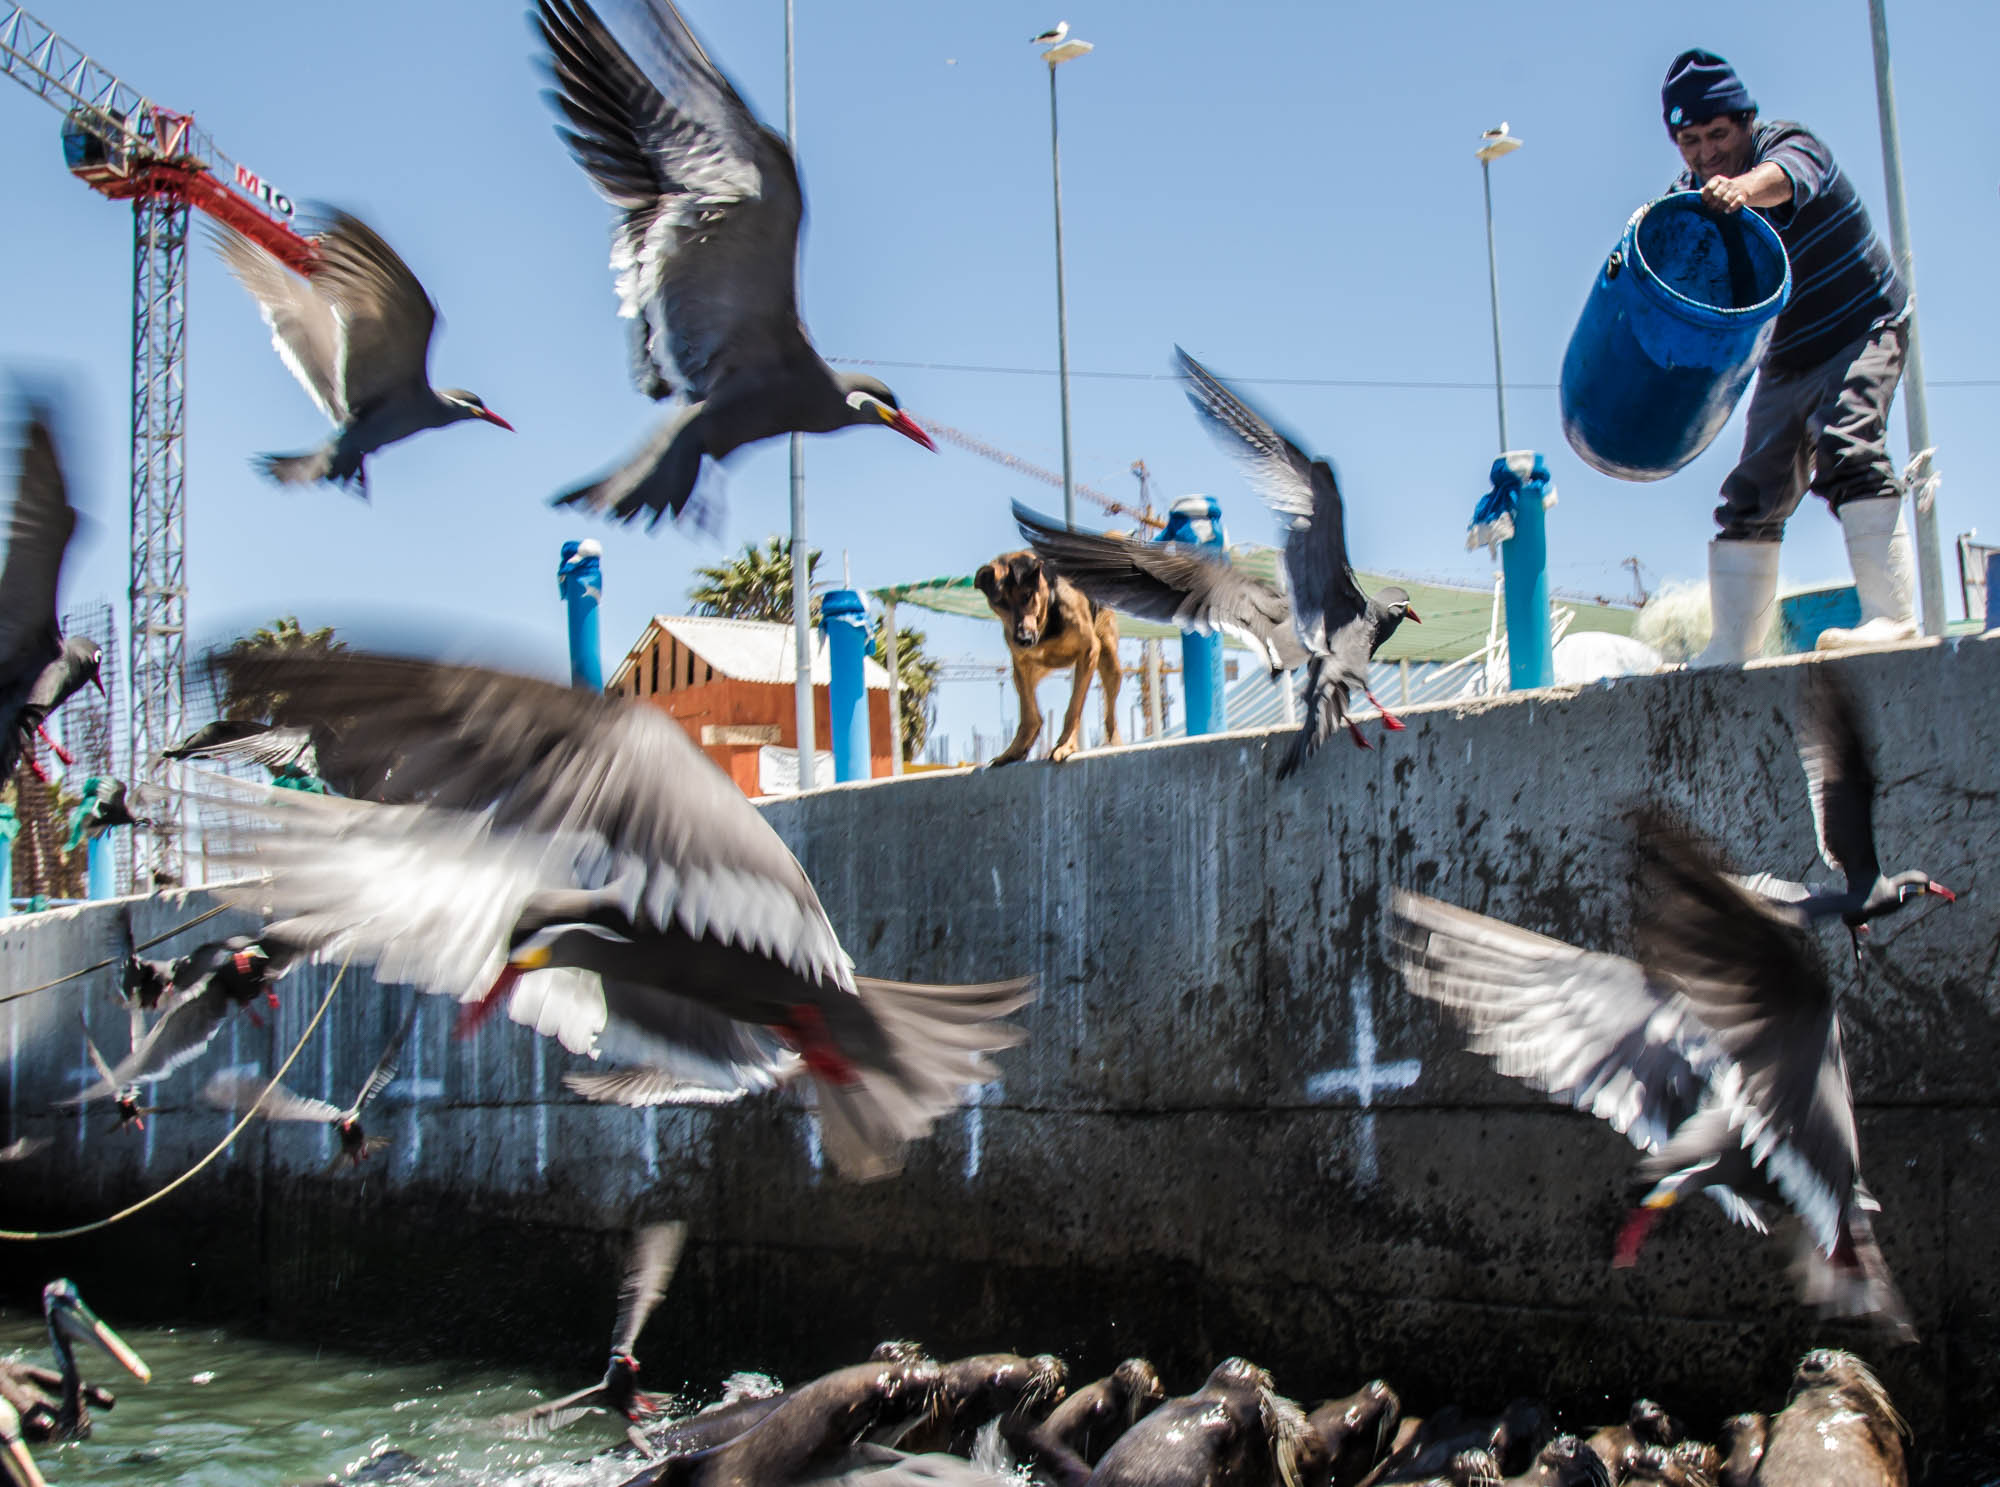 A local fisherman dumps the extra fish guts from his previous catch to the sea lions to distract them from his boats. Fishermen in Coquimbo use different tactics to distract the sea lions from their fish in the hopes that it will give them time to unload their boat.